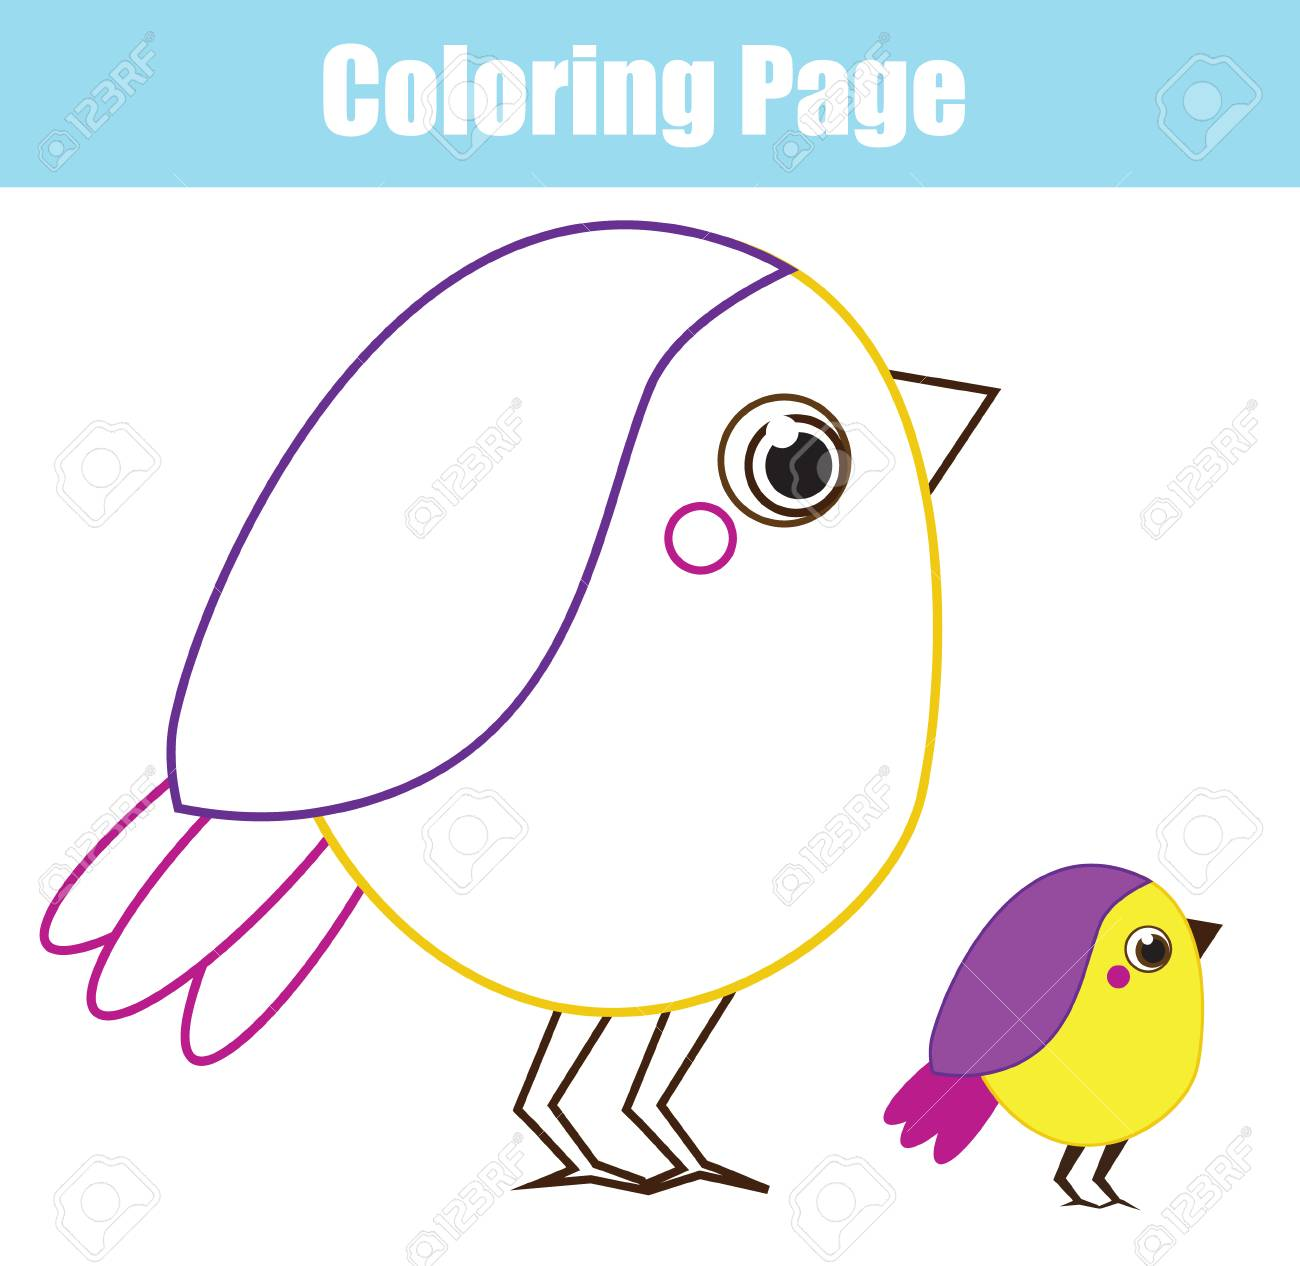 Coloring page for children and kids printable toddlers fun page elementary